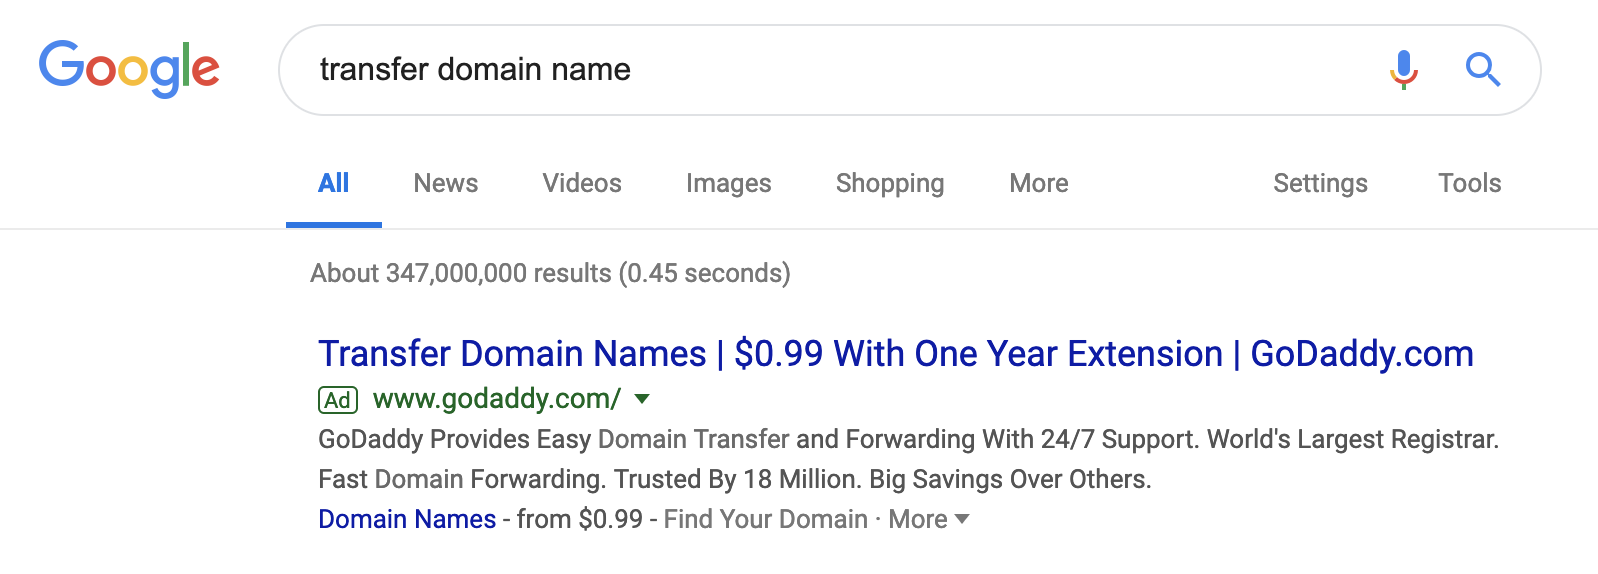 Google Transfer Domain Name Coupon for $0.99